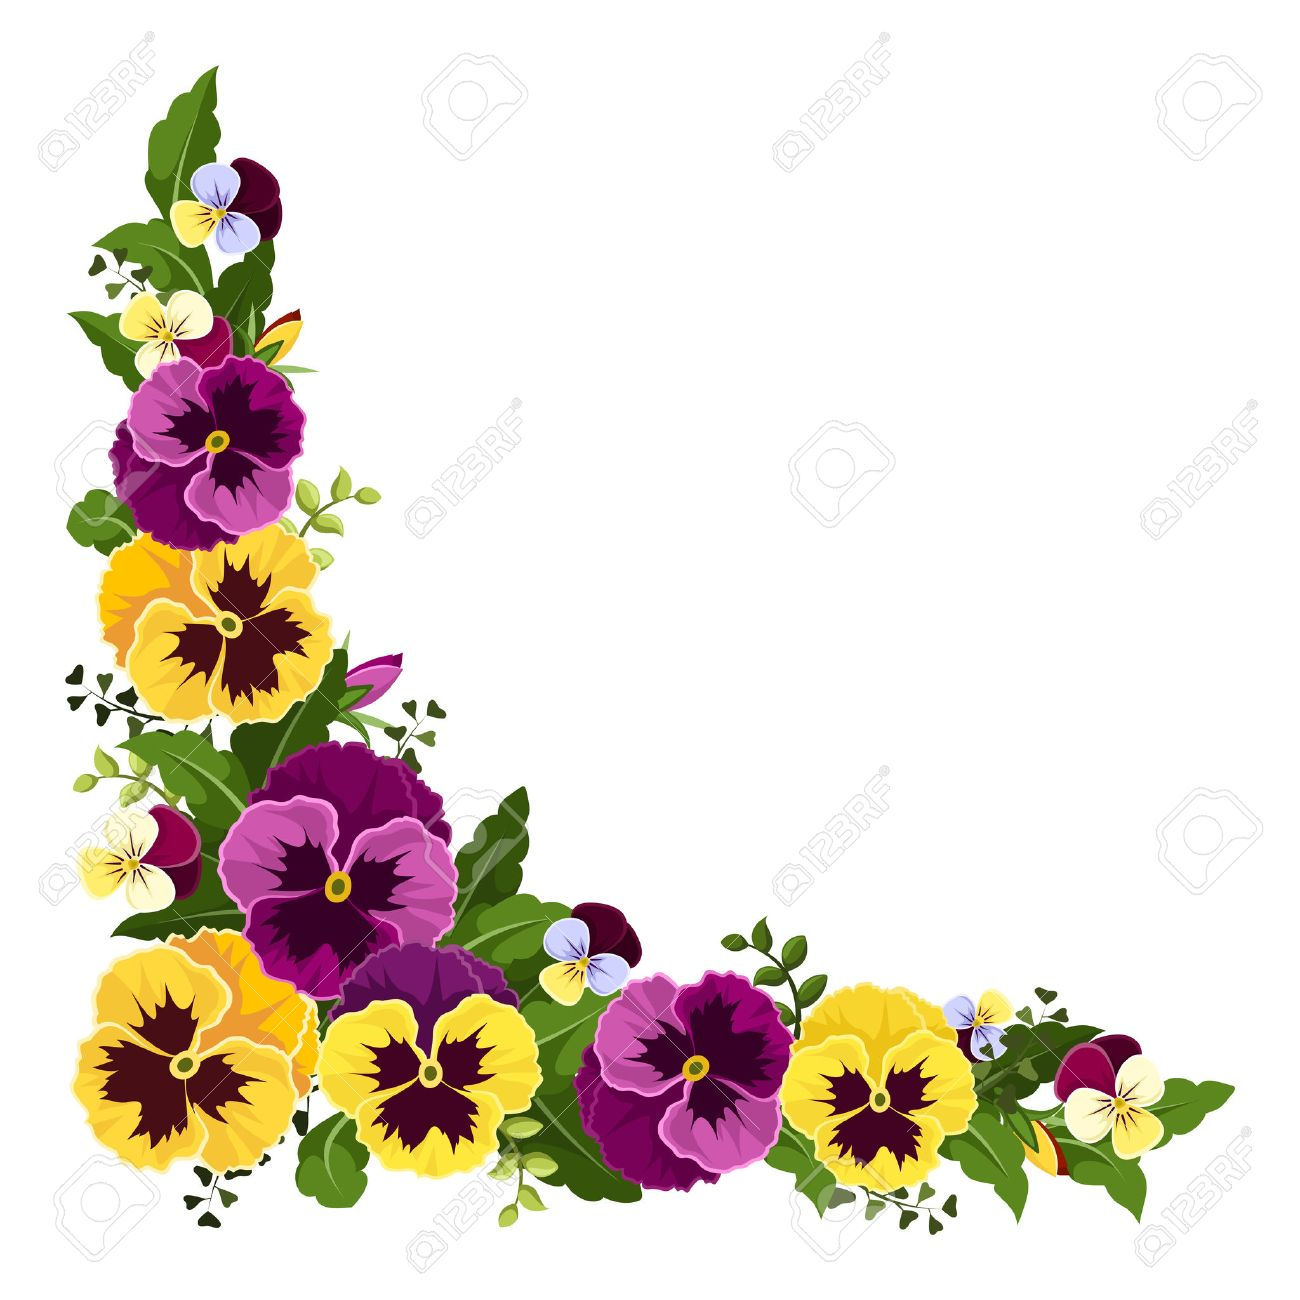 Corner background with pansy flowers - 28461431